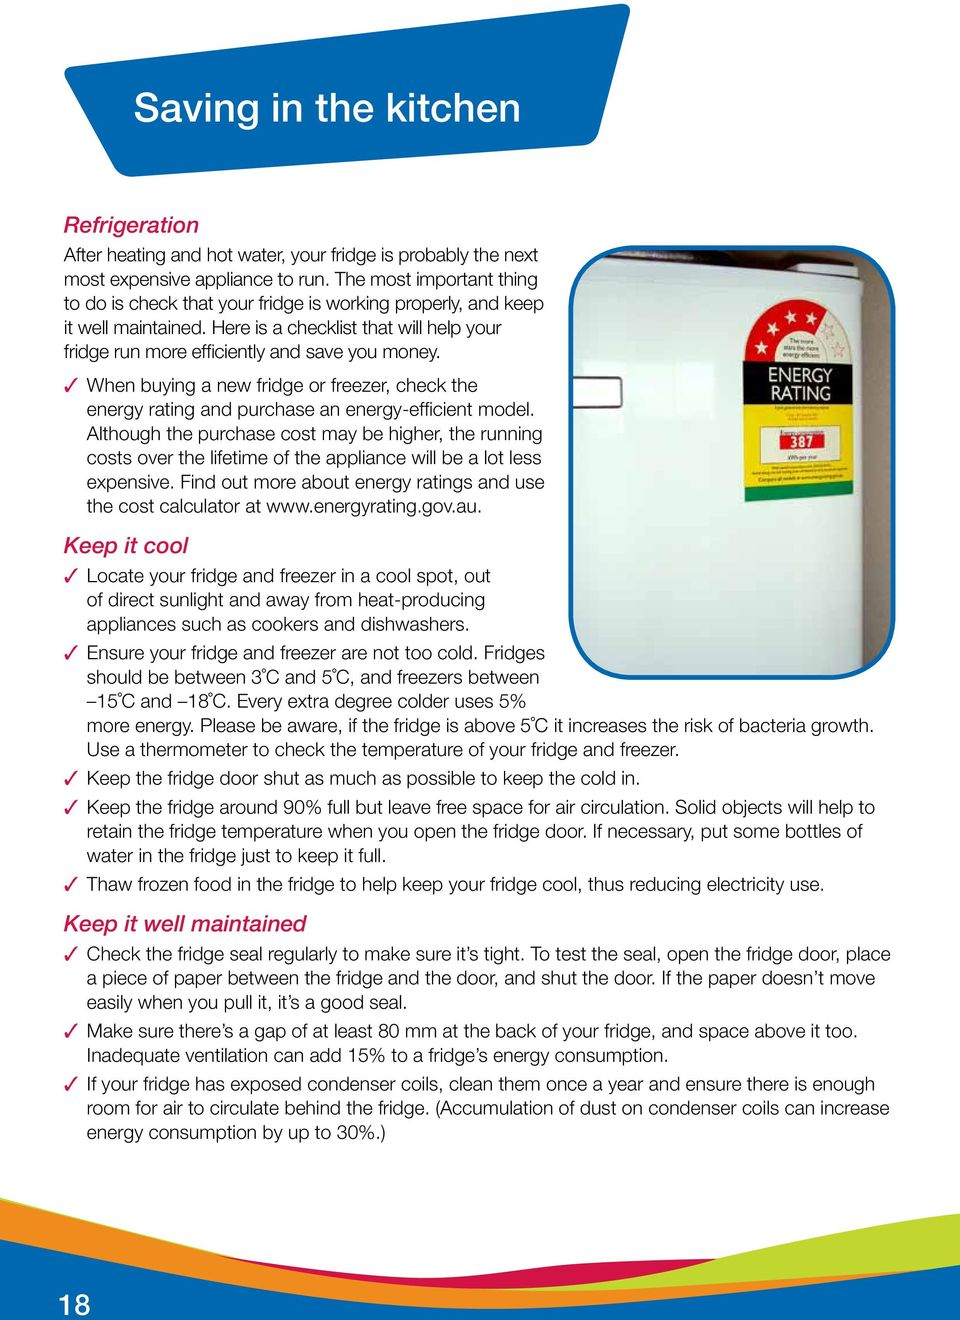 When buying a new fridge or freezer, check the energy rating and purchase an energy-efficient model.